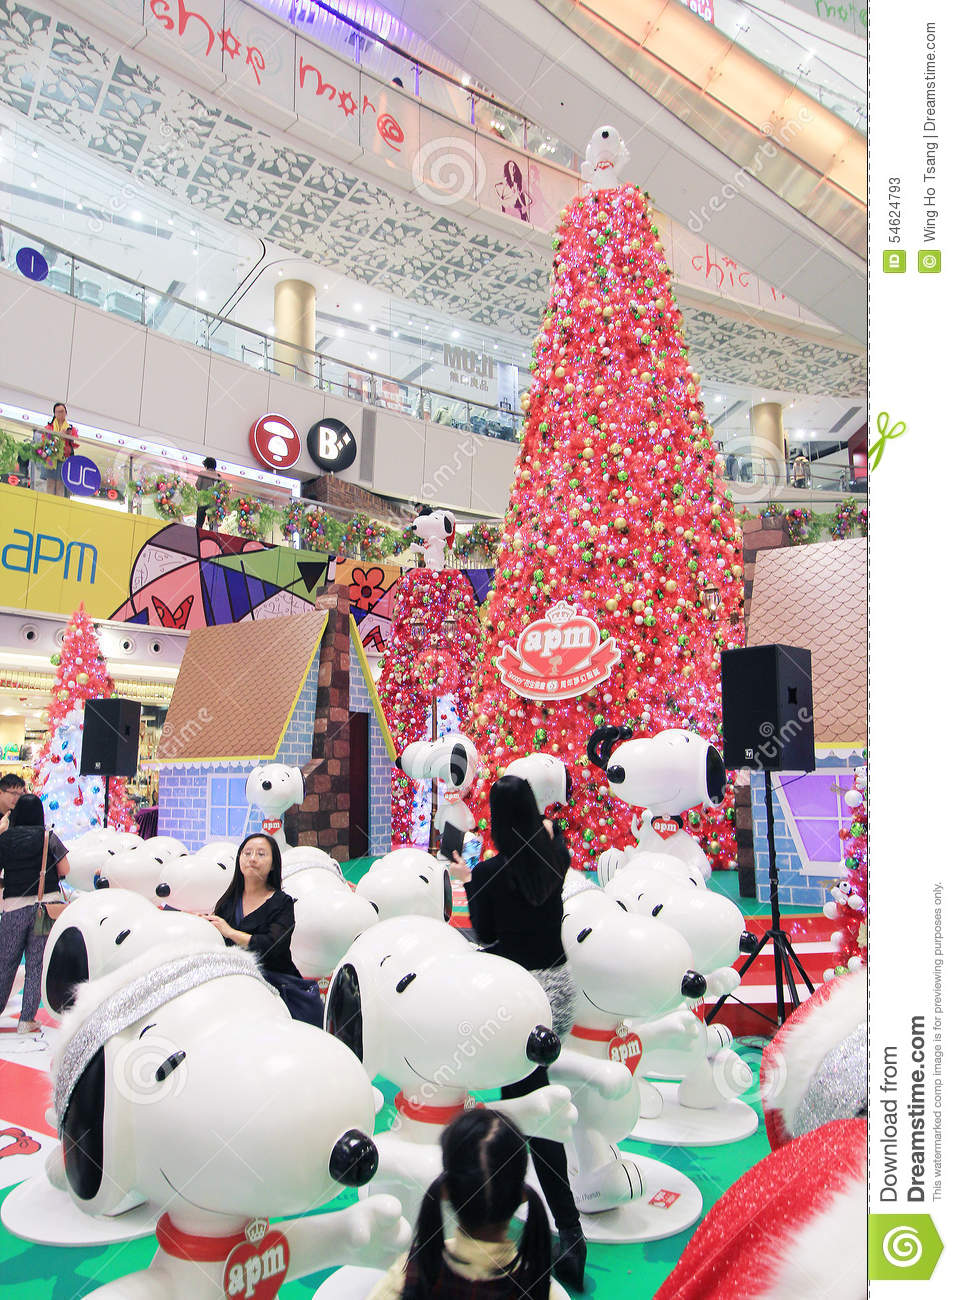 Christmas Snoopy.Apm Christmas Snoopy Decoration In Hong Kong Editorial Stock